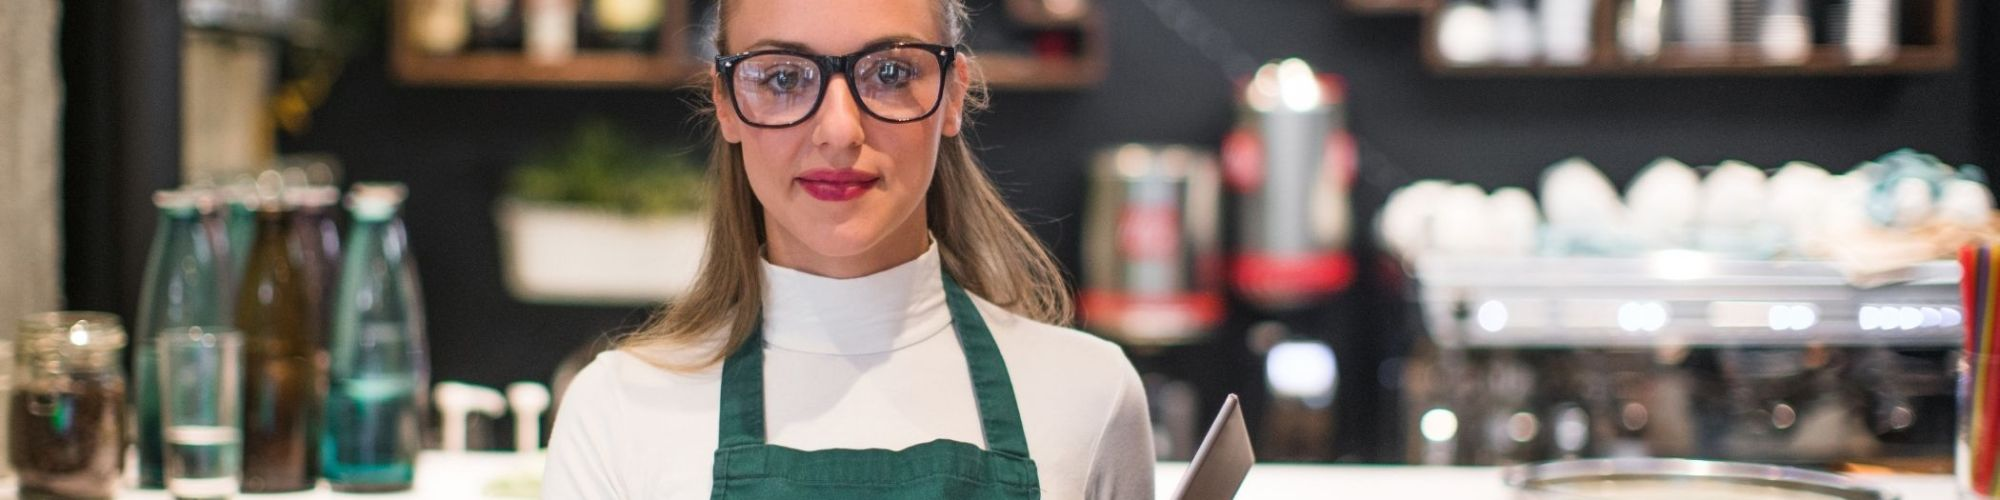 Student working at a restaurant